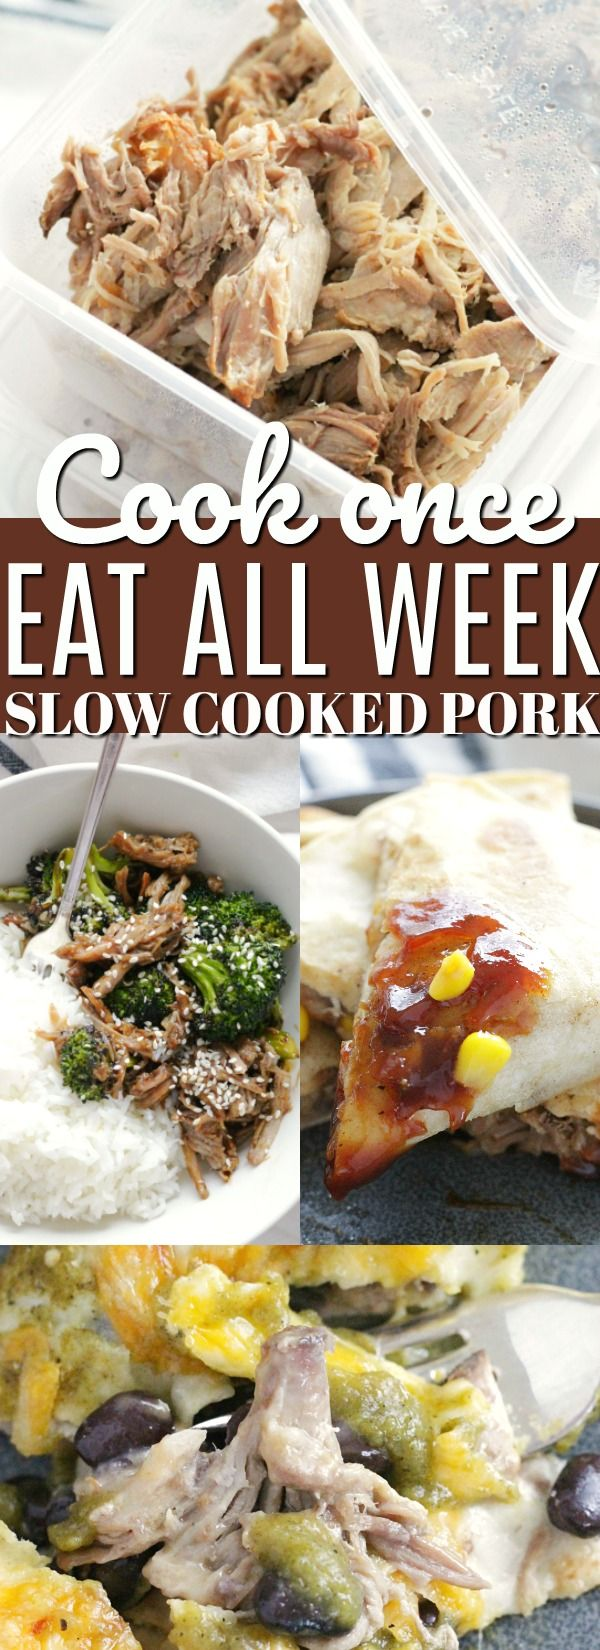 Cook One Eat All Week with Slow Cooker Pork | Foodtastic Mom #ad #ohpork